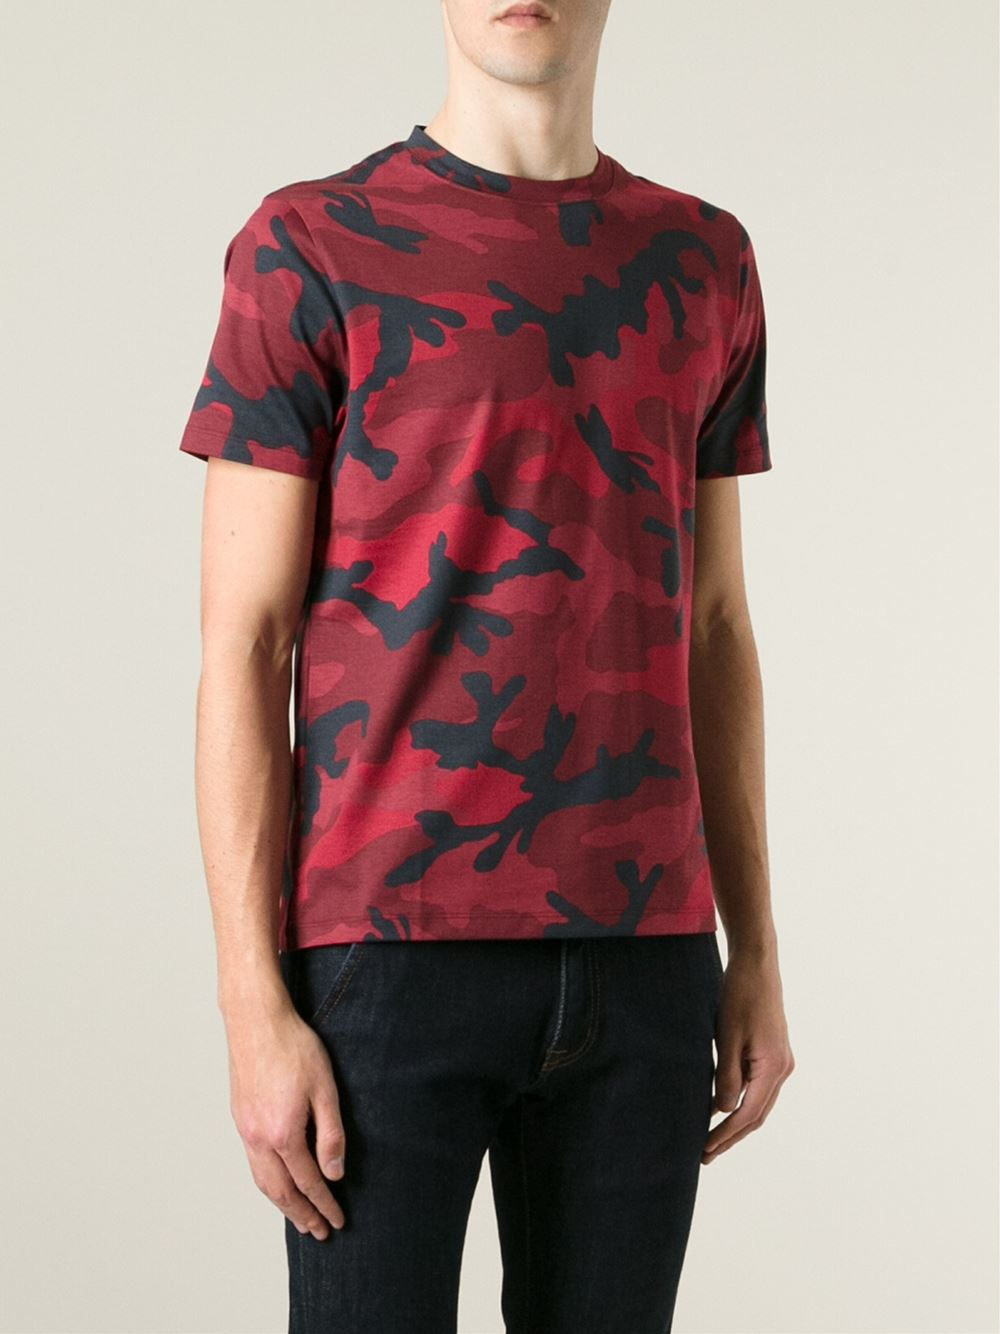 Valentino 39 rockstud 39 camouflage t shirt in red for men lyst for Red valentino t shirt